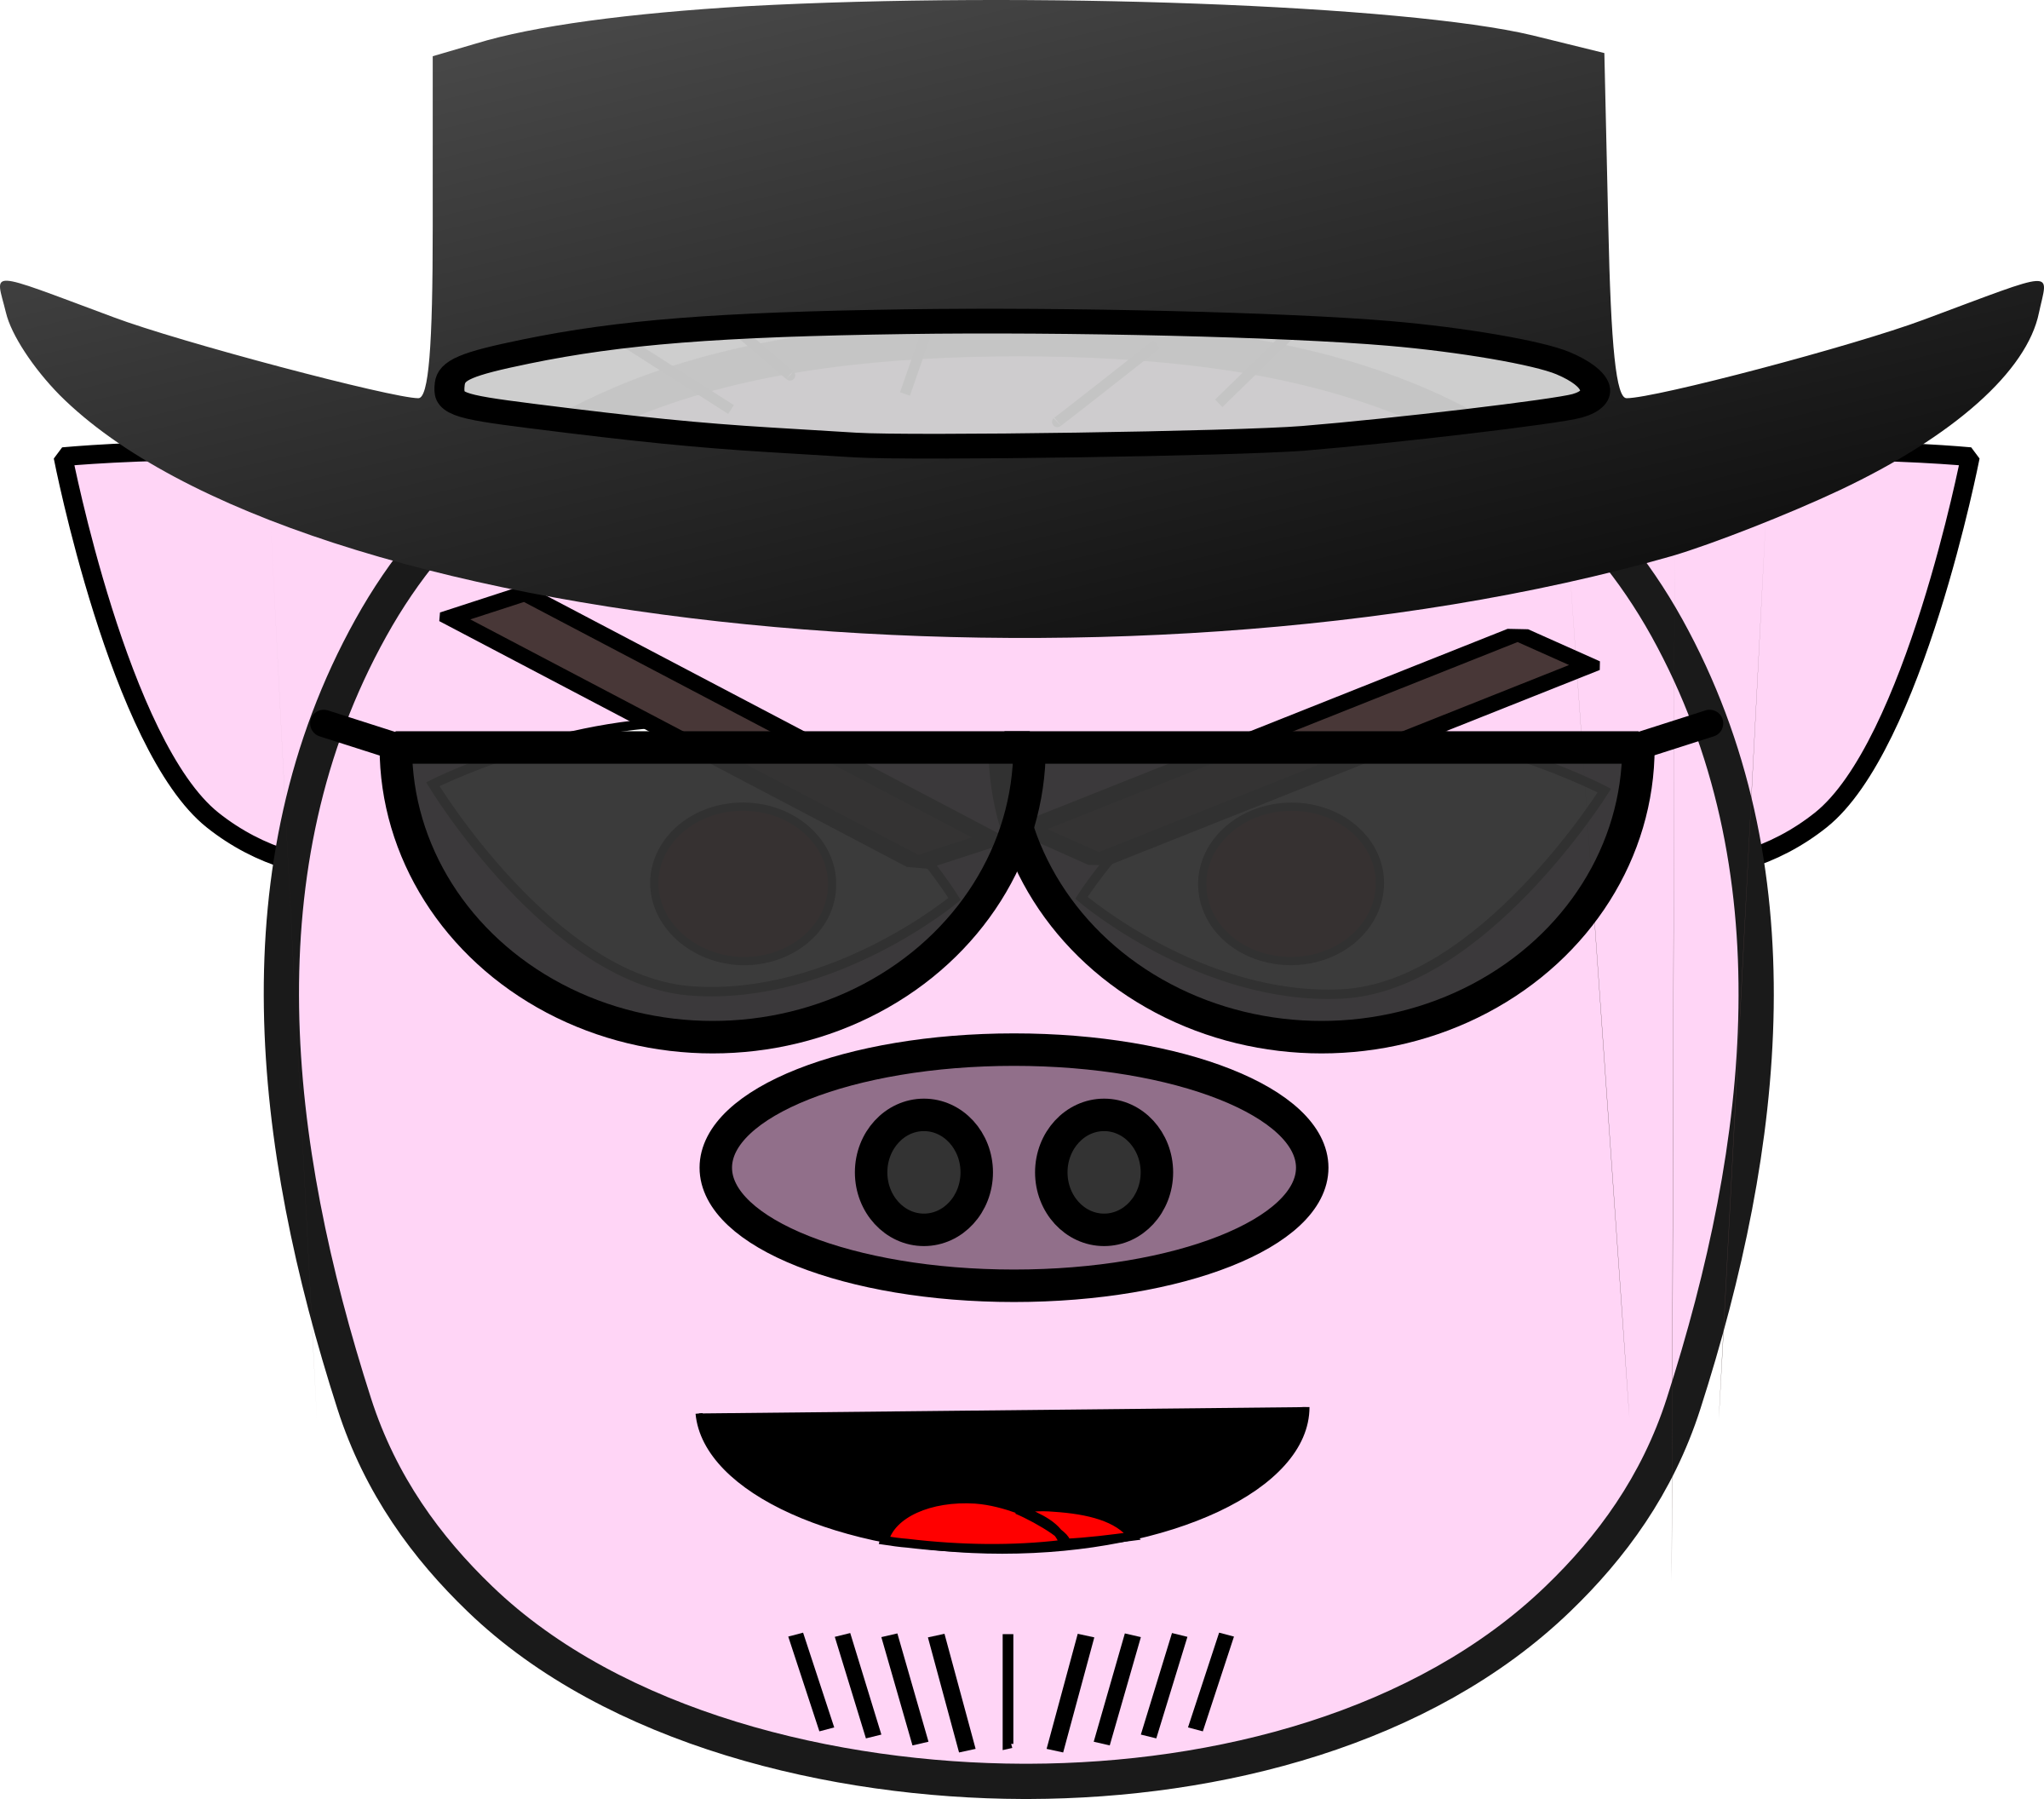 Evil cartoon mouth png. Pig icons free and